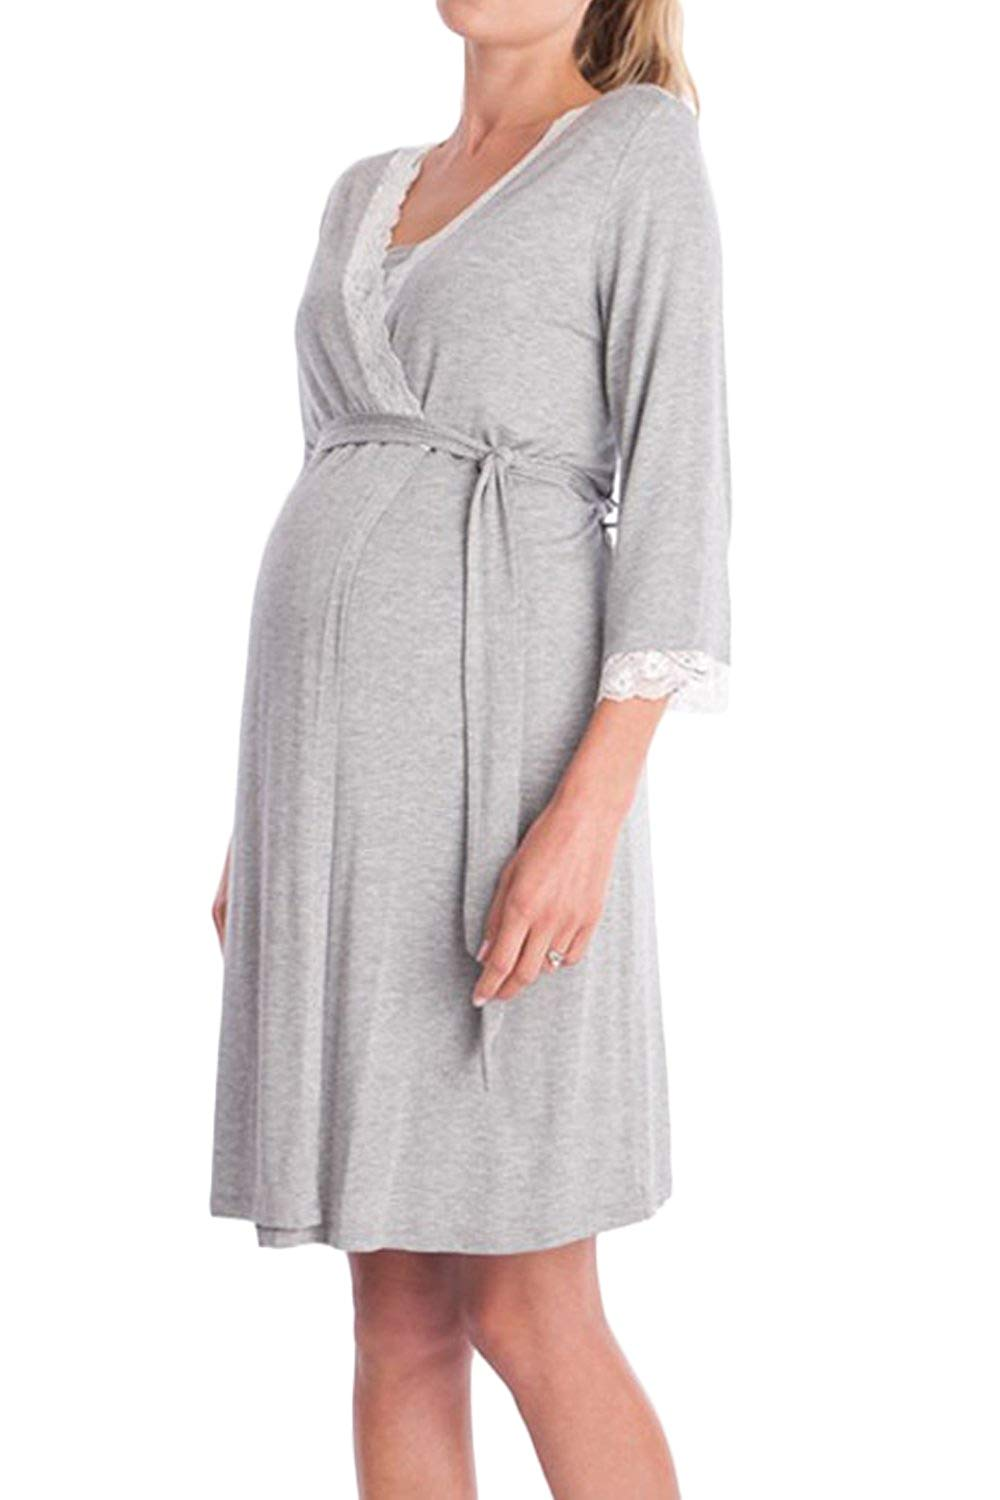 7f27adb637e12 Get Quotations · Yacun Women's Maternity Robe Pajamas 3/4 Sleeve Nursing  Nightgown